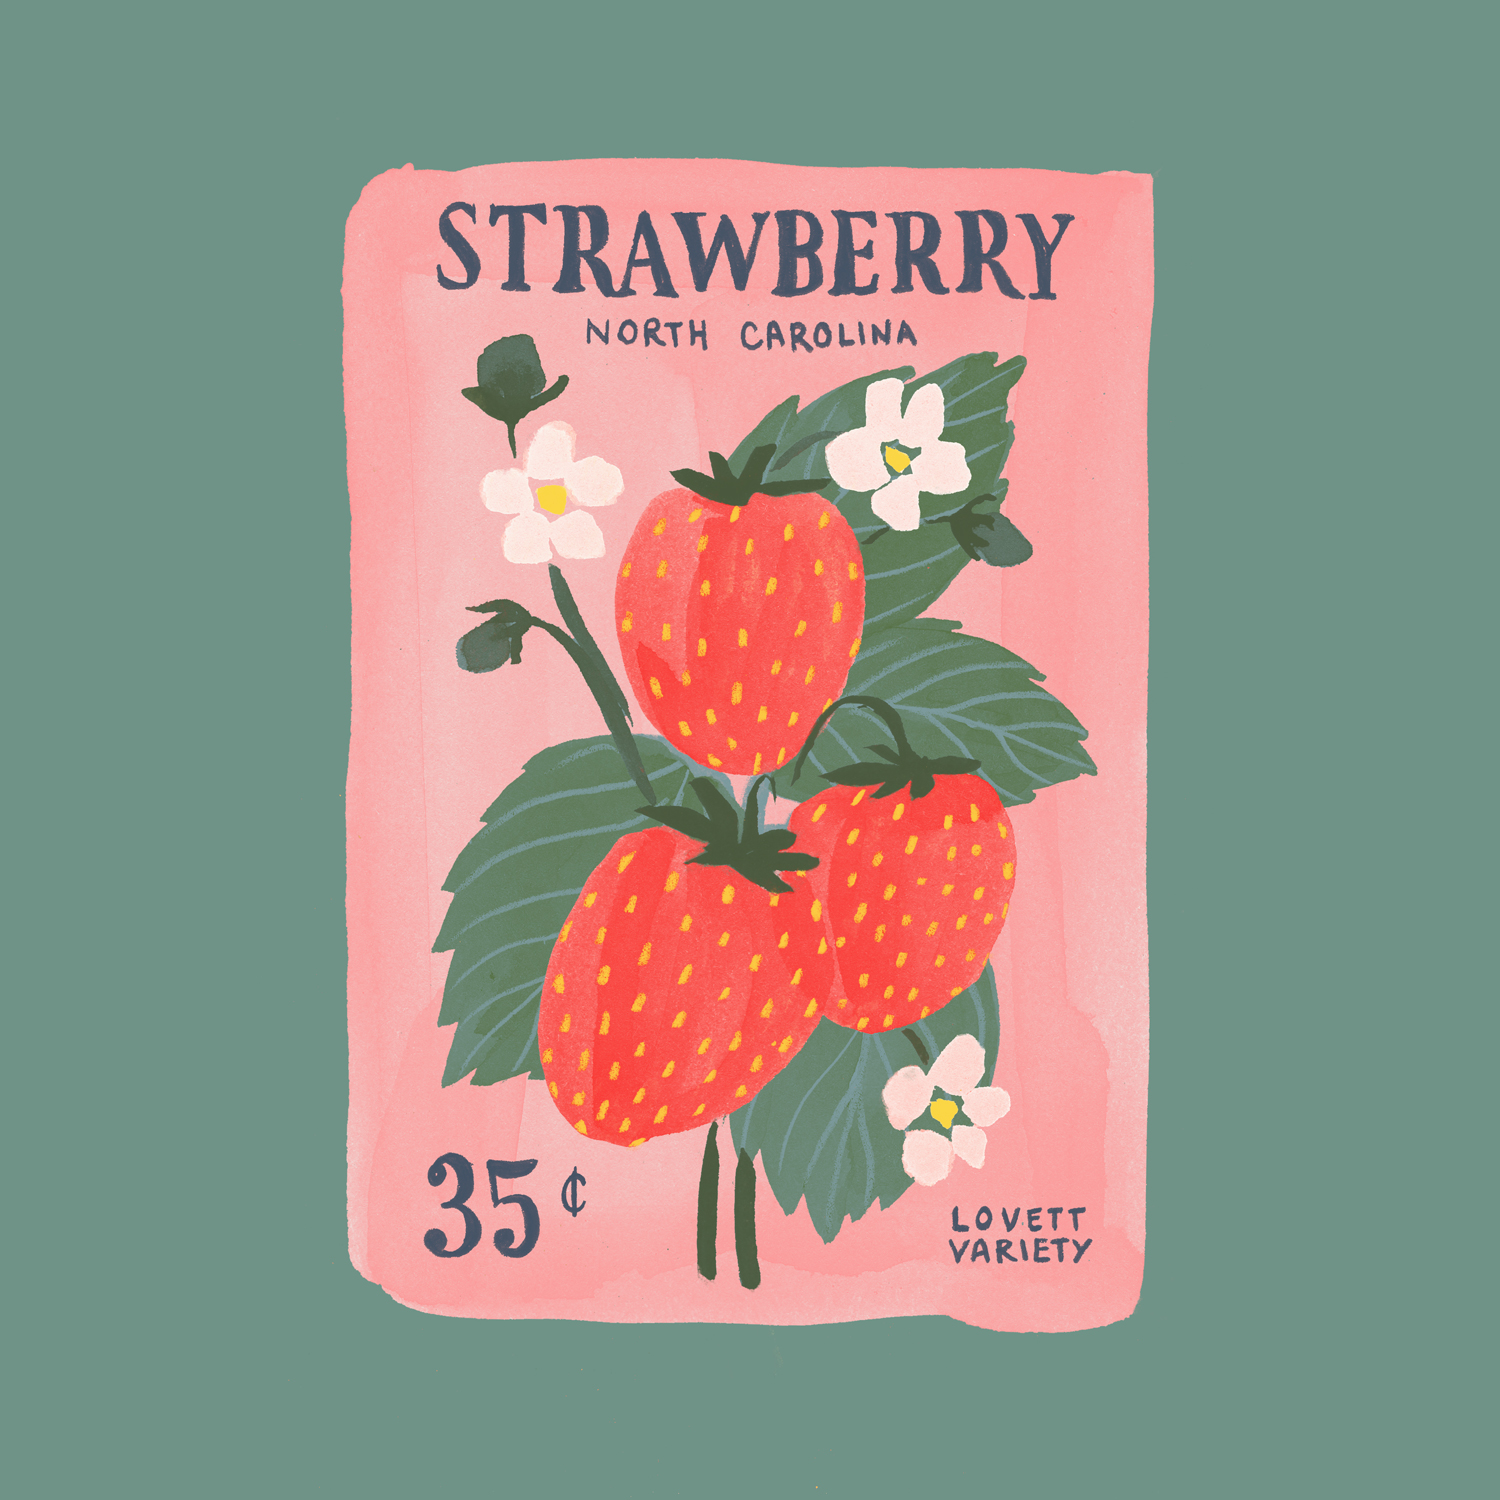 Seeds-strawberry-1500.jpg